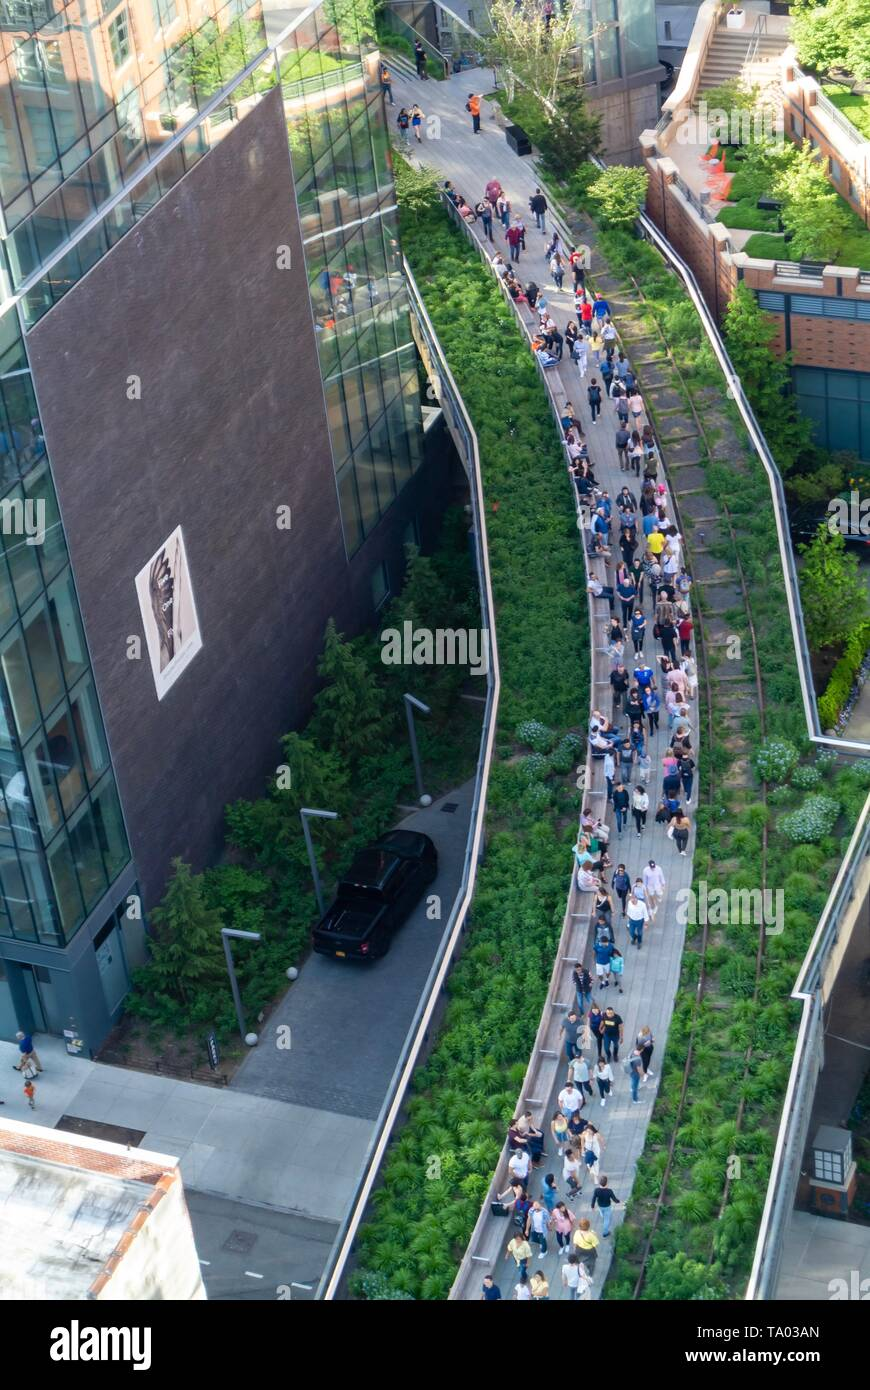 The high line, urban park redeveloped from an abandoned elevated rail line in Chelsea, Manhattan New york city, NY / USA Stock Photo